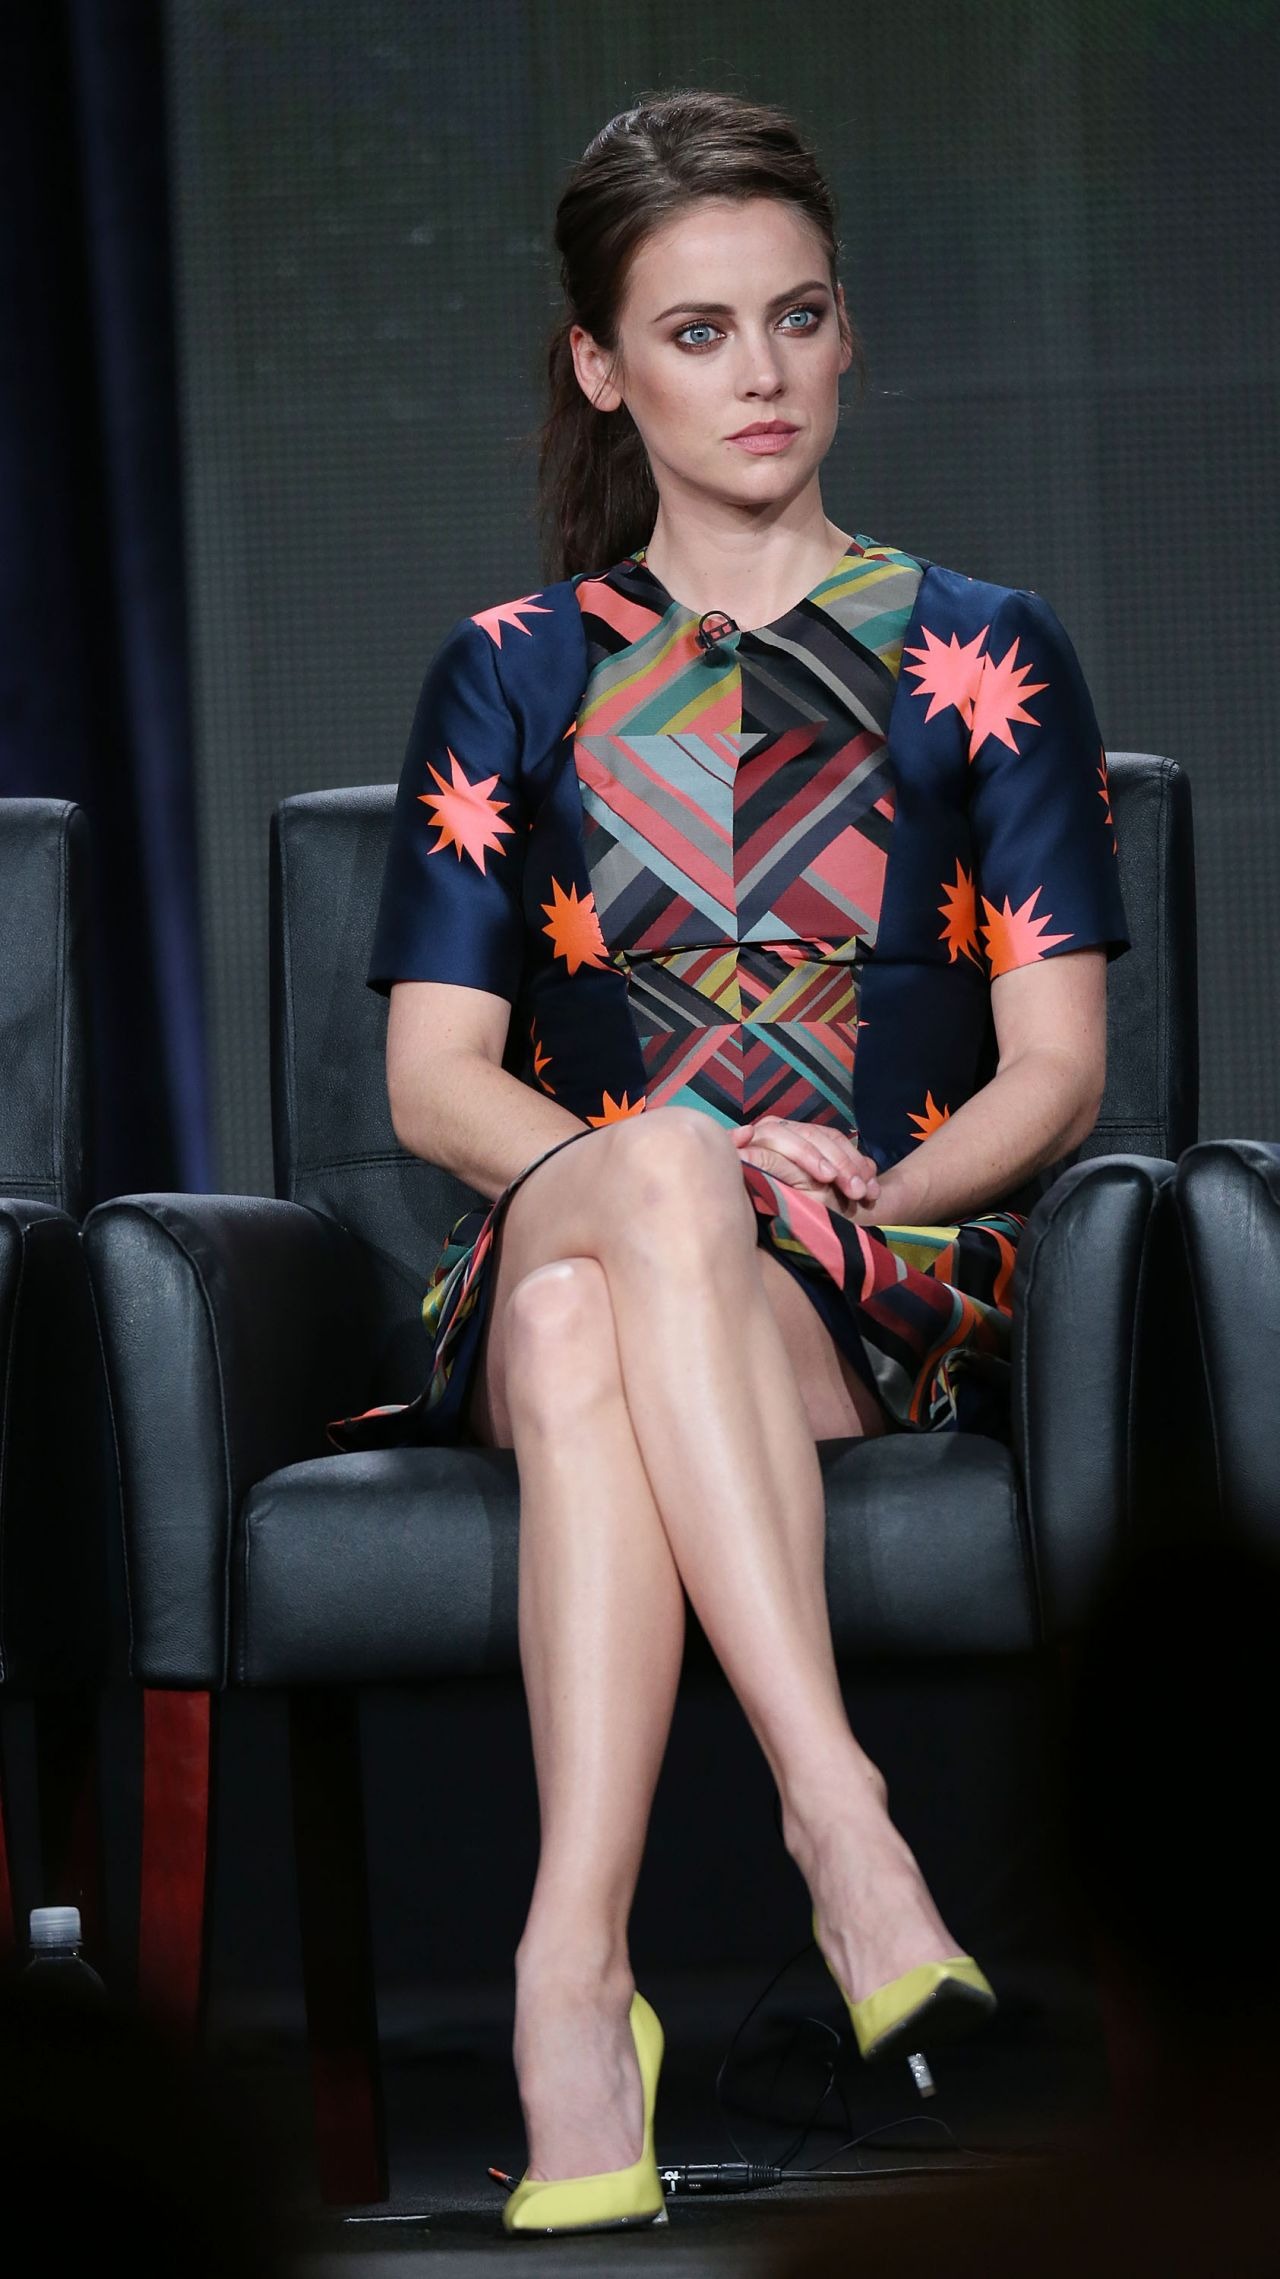 Jessica Stroup at The Following Panel at the Winter 2014 TCA Presentations in Pasadena